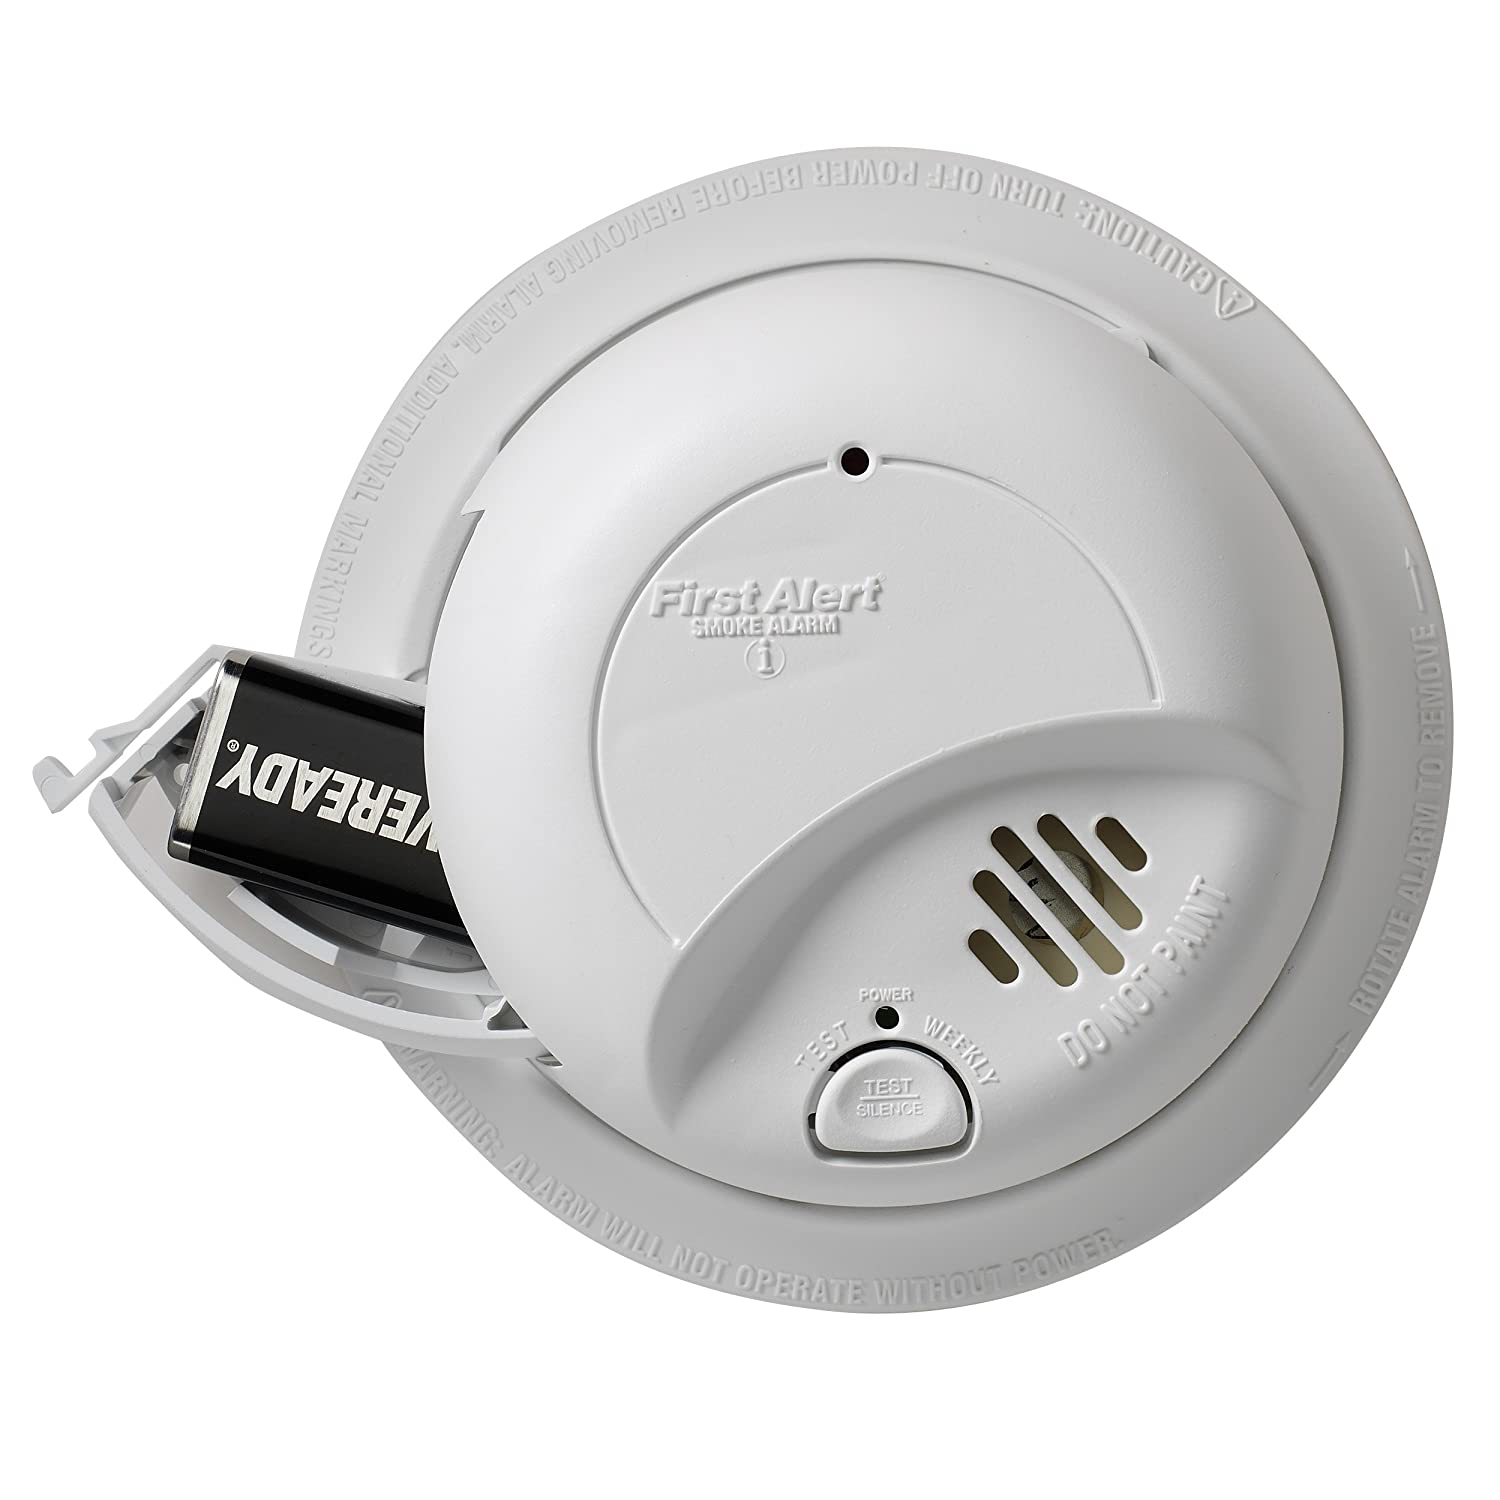 The Best Smoke Alarms: Reviews & Comparisons of Top Rated Smoke ...